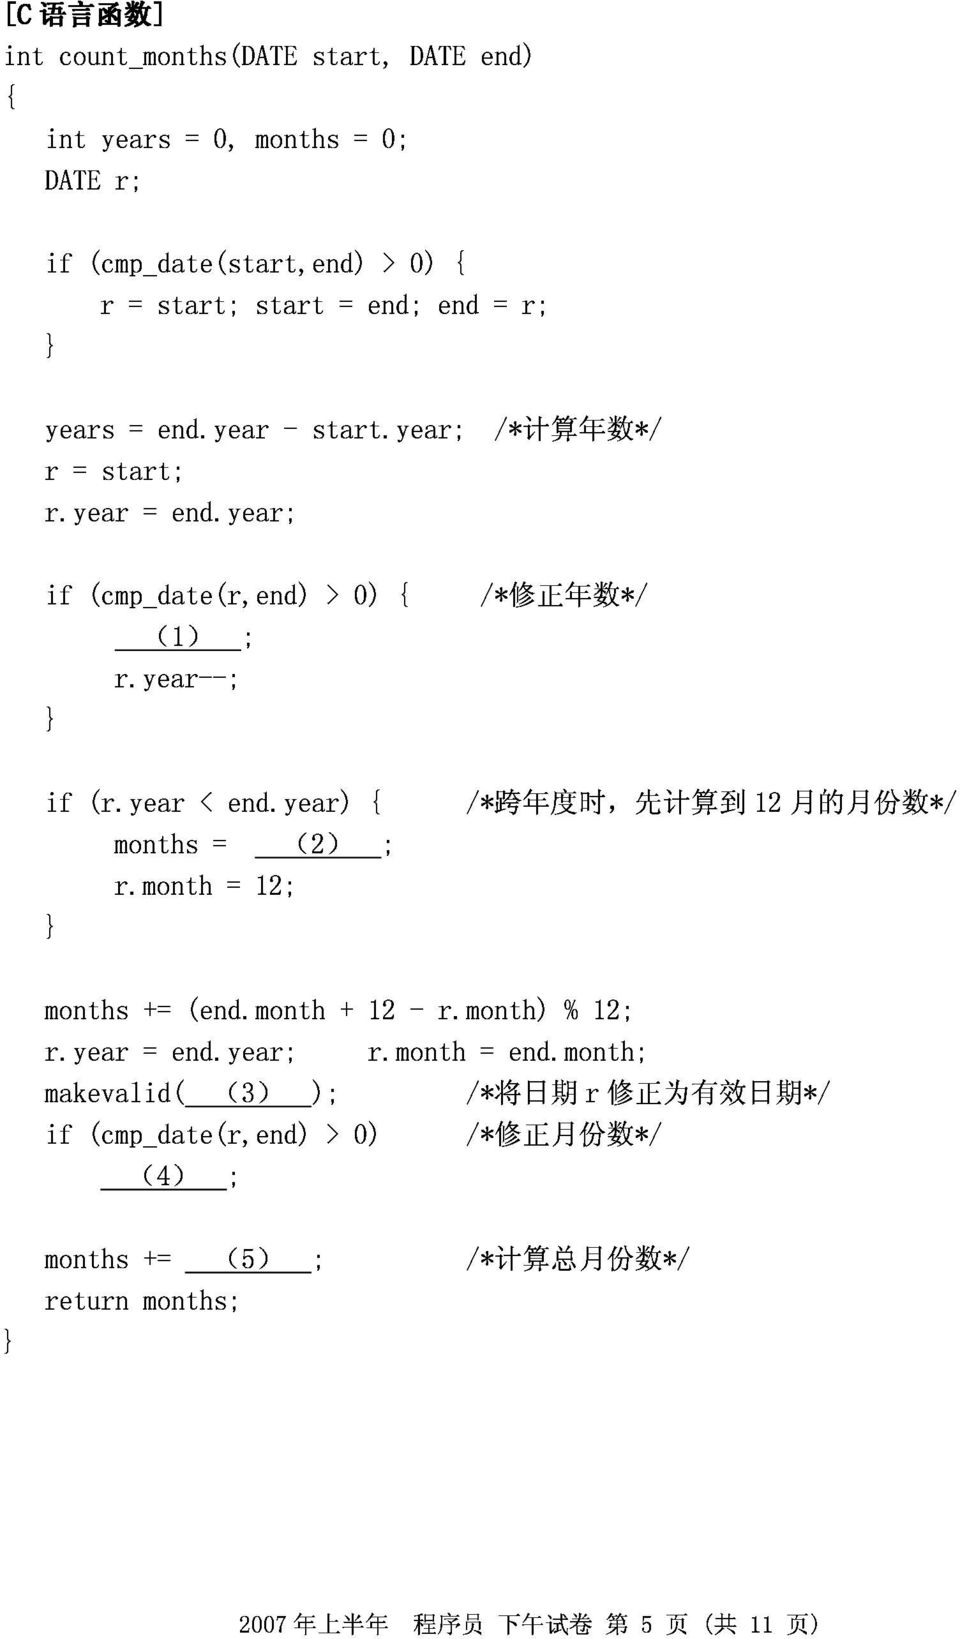 year) (2){; /* 跨 年 度 时, 先 计 算 到 12 月 的 月 份 数 */ months r.month = 12; r.year makevalid( if (cmp_date(r,end) += (end.month + 12 - r.month) % 12; (4) = end.